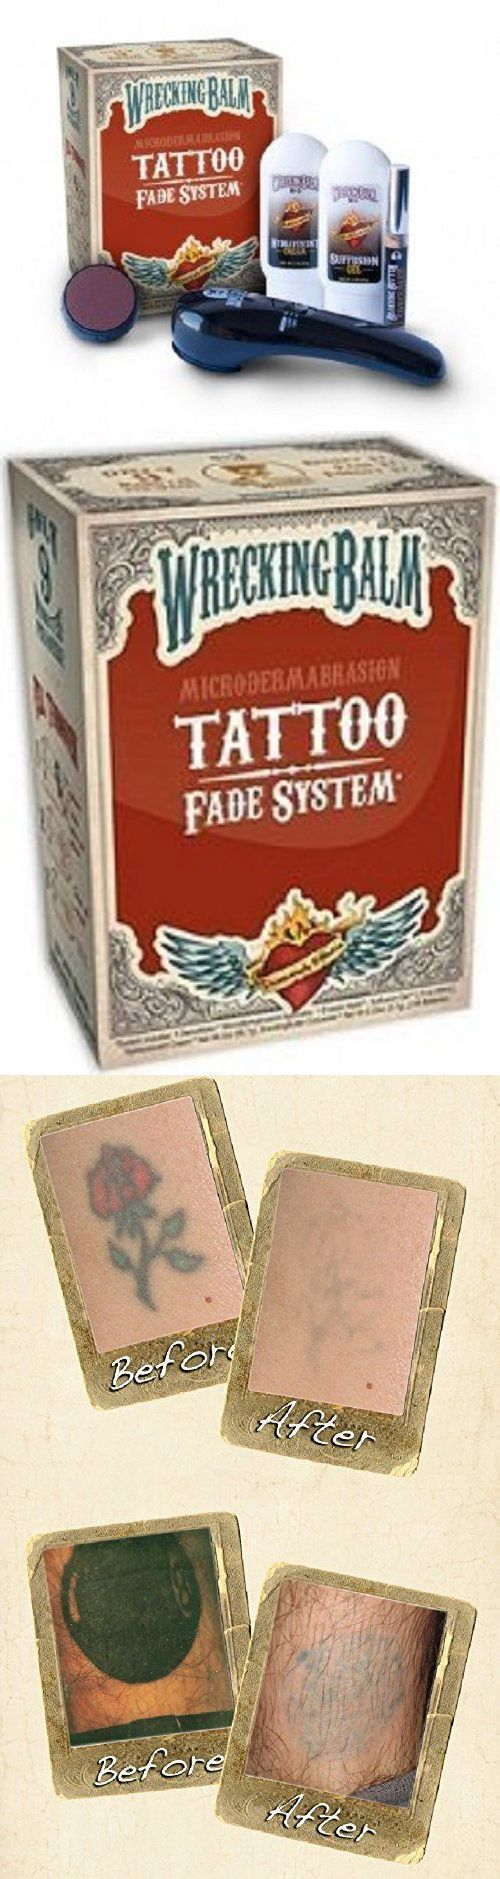 Tattoo Removal - Tattoo Removal Machines: Remove Tattoos Cream Wrecking Balm Microdermabrasion Help Tattoo No Sales Tax ! -> BUY IT NOW ONLY: $36.55 on eBay! - Quick and Easy Natural Methods & Secrets to Eliminating the Unwanted Tattoo That You've Been Regretting for a Long Time #TattooRemoval